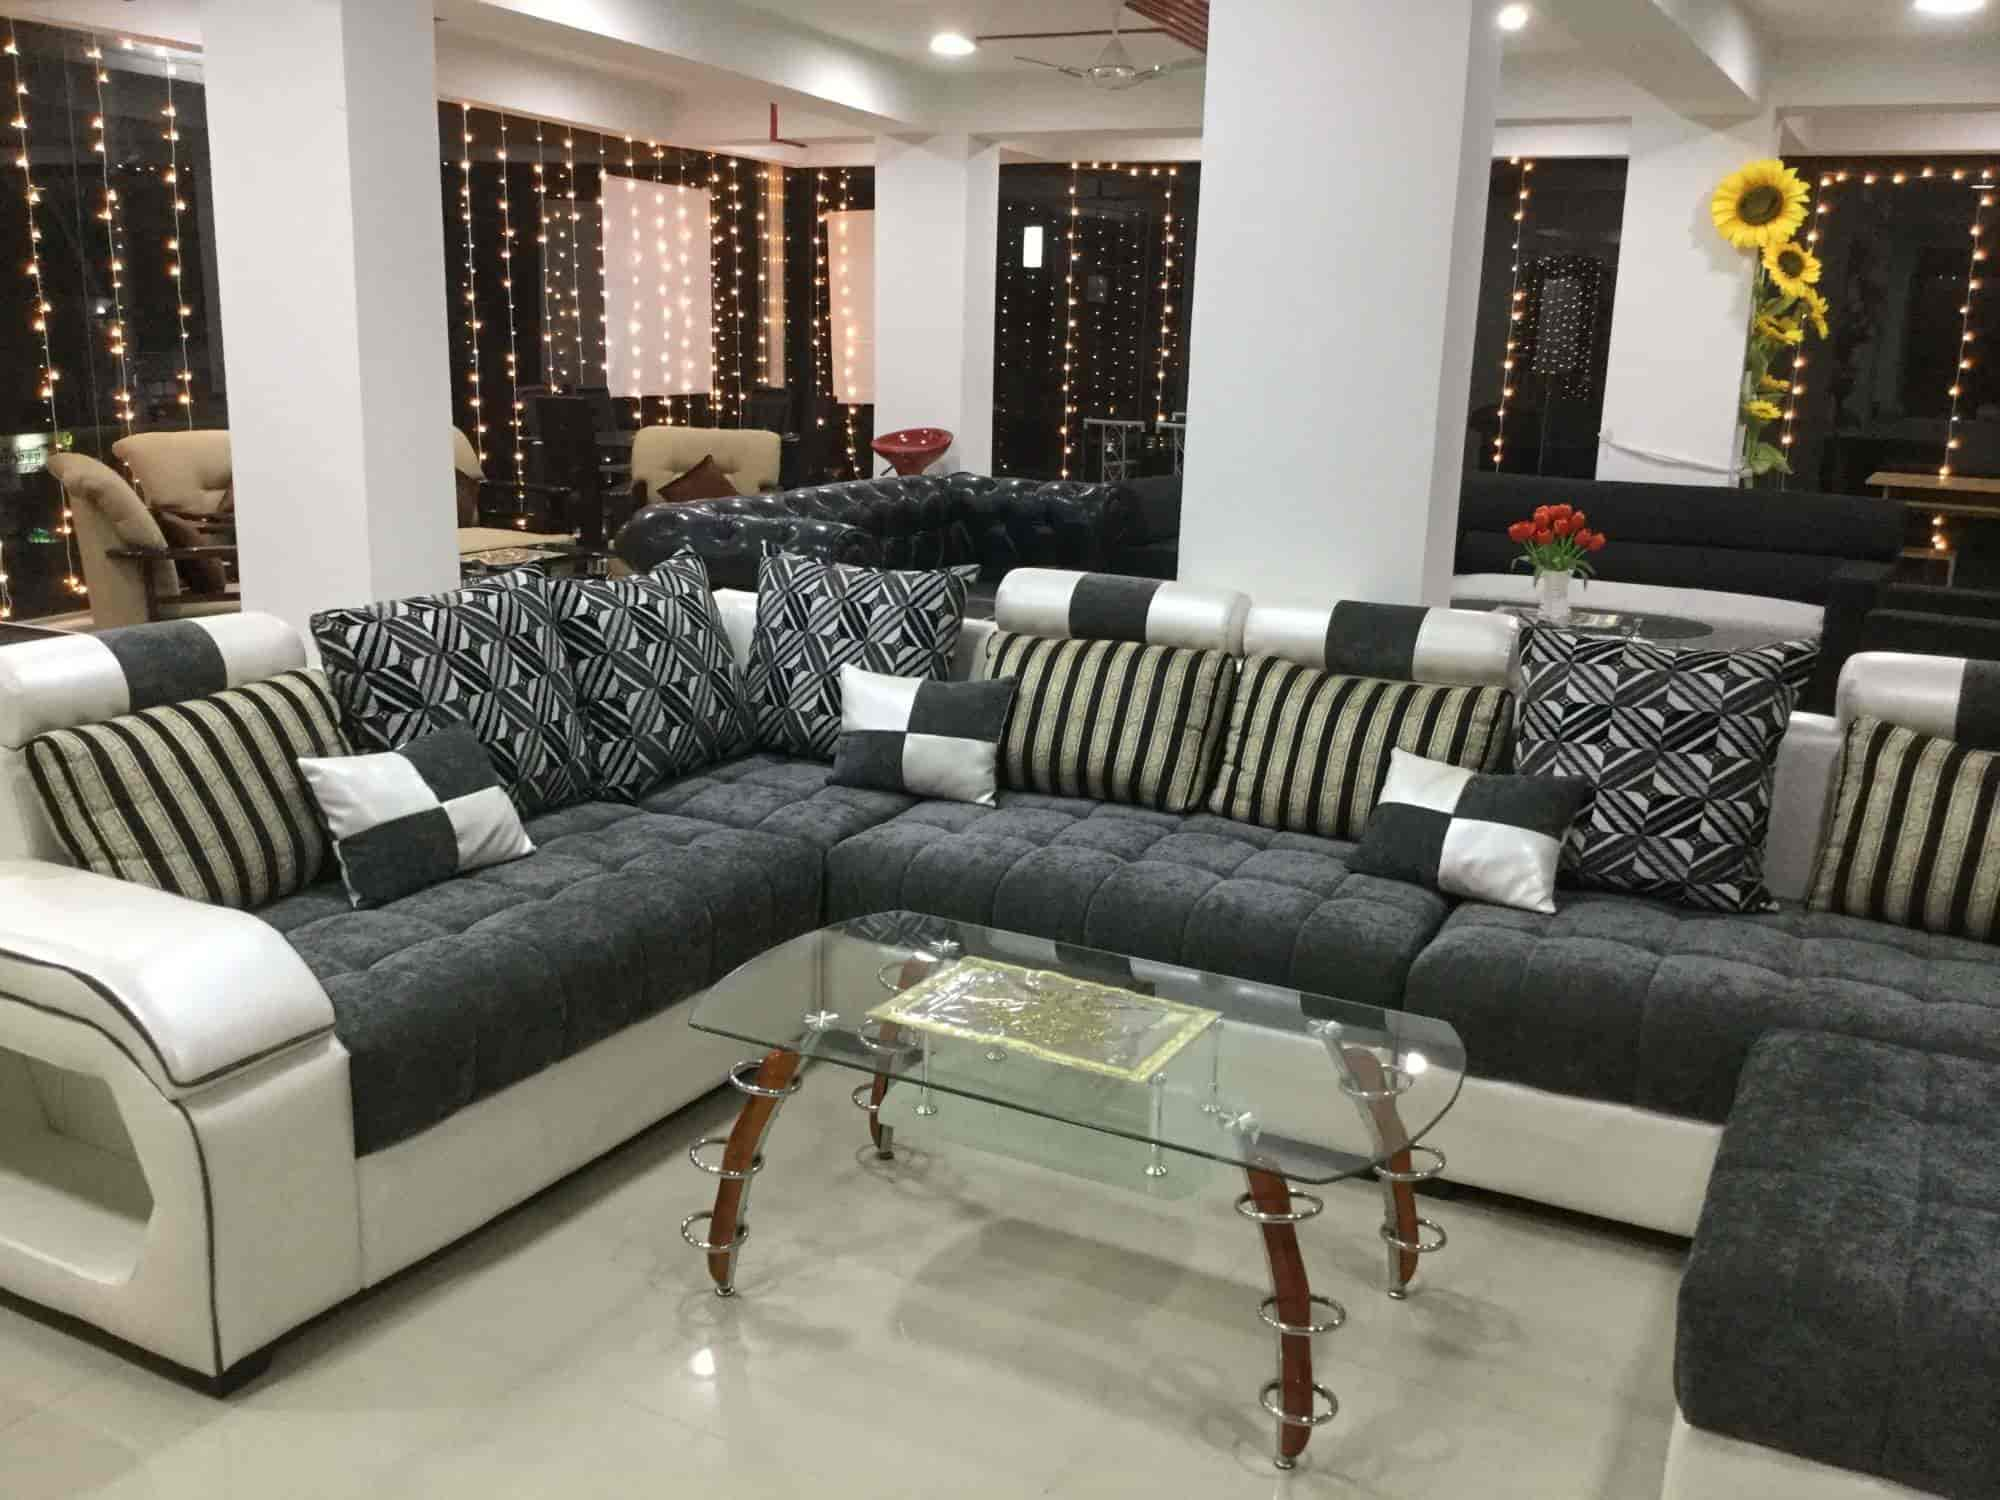 Stylish Furniture Hub Rg Baruah Road Furniture Dealers In